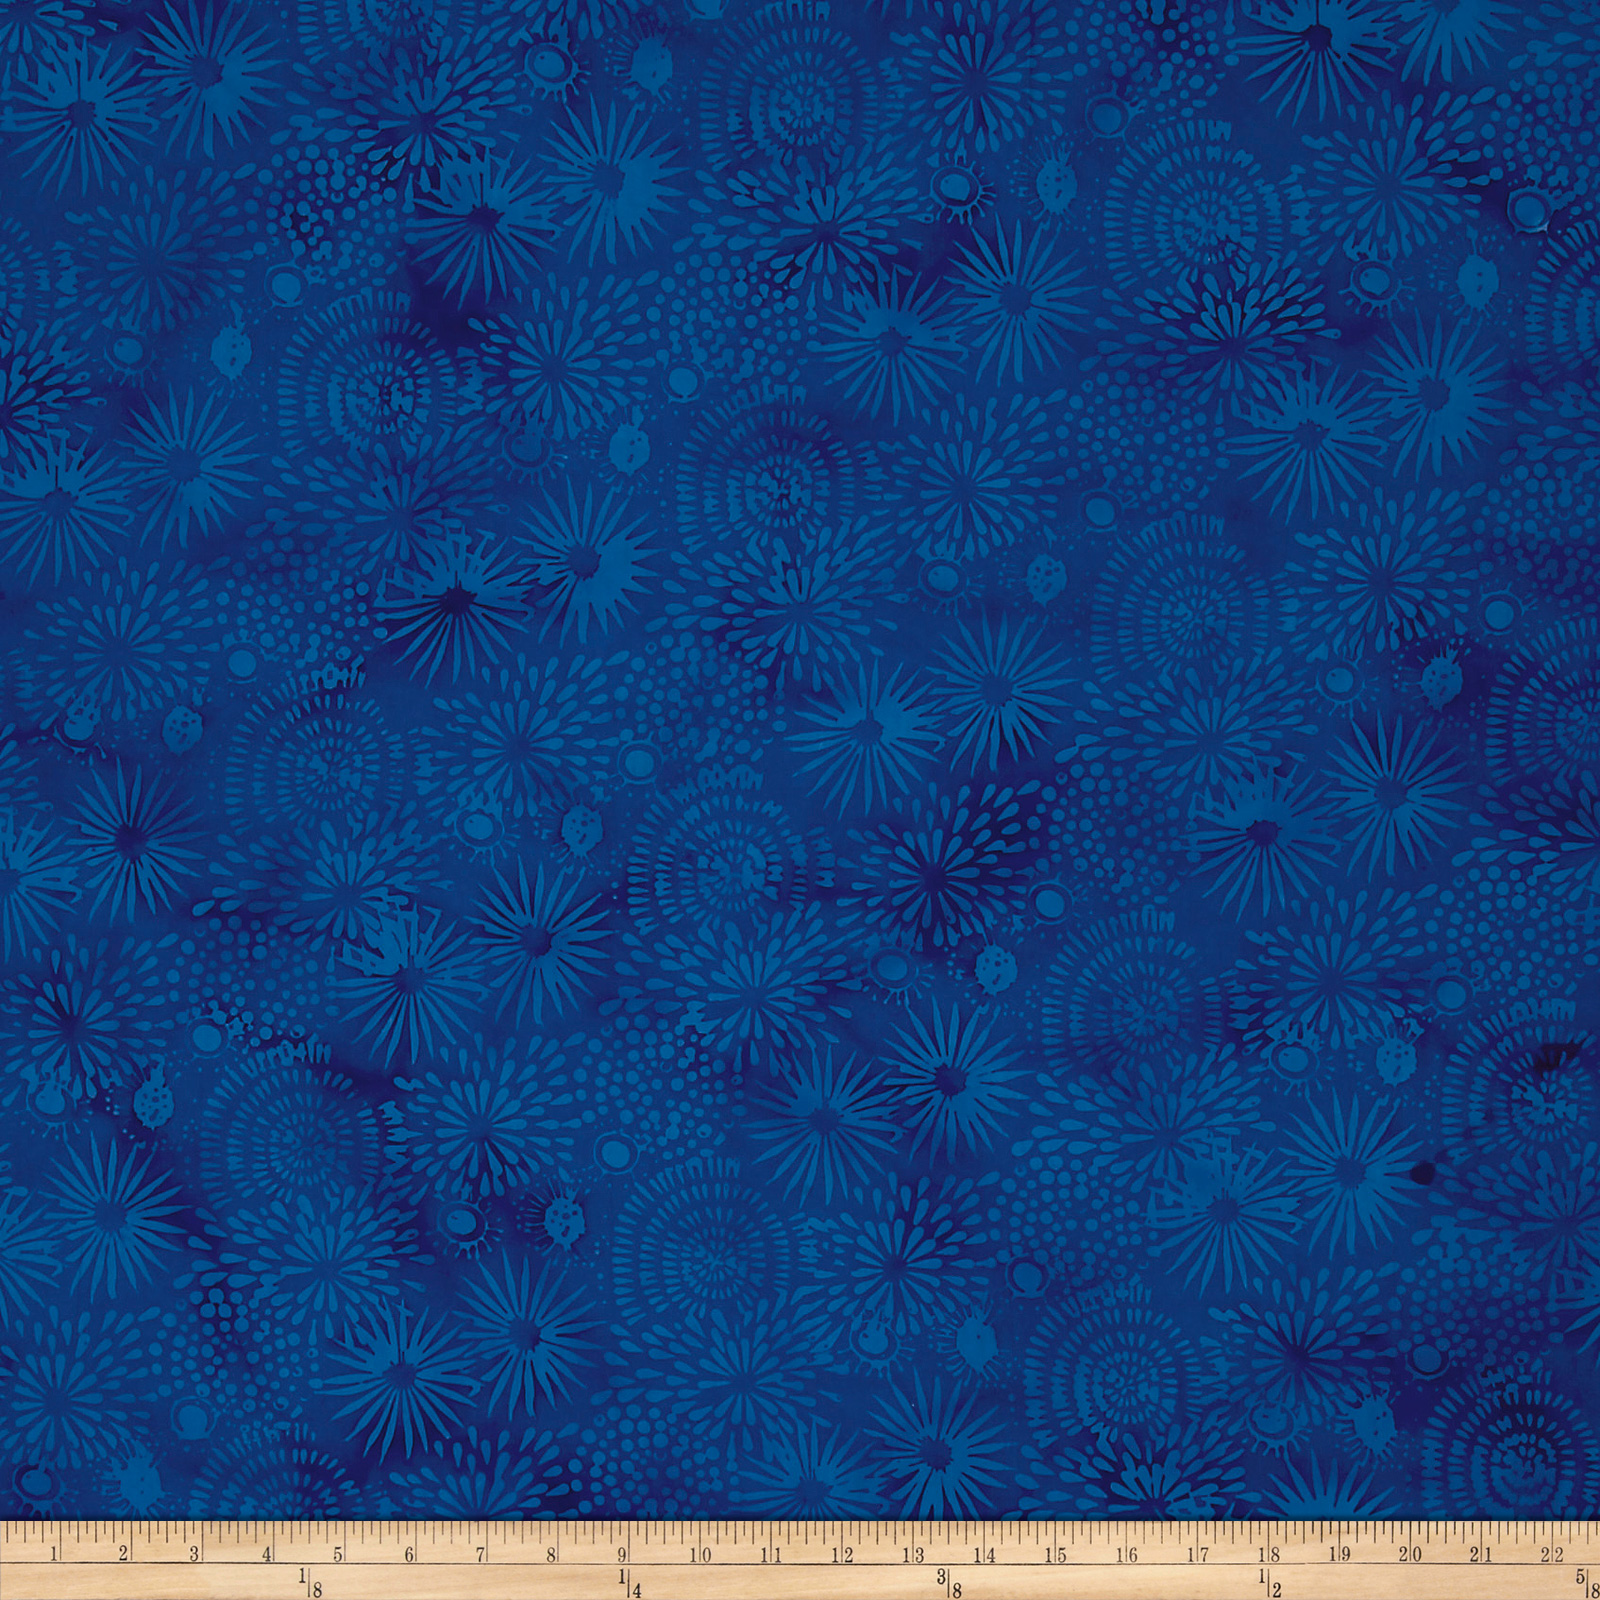 Image of Island Batik Pressed Petals Large Mixed Floral Blueberry Fabric